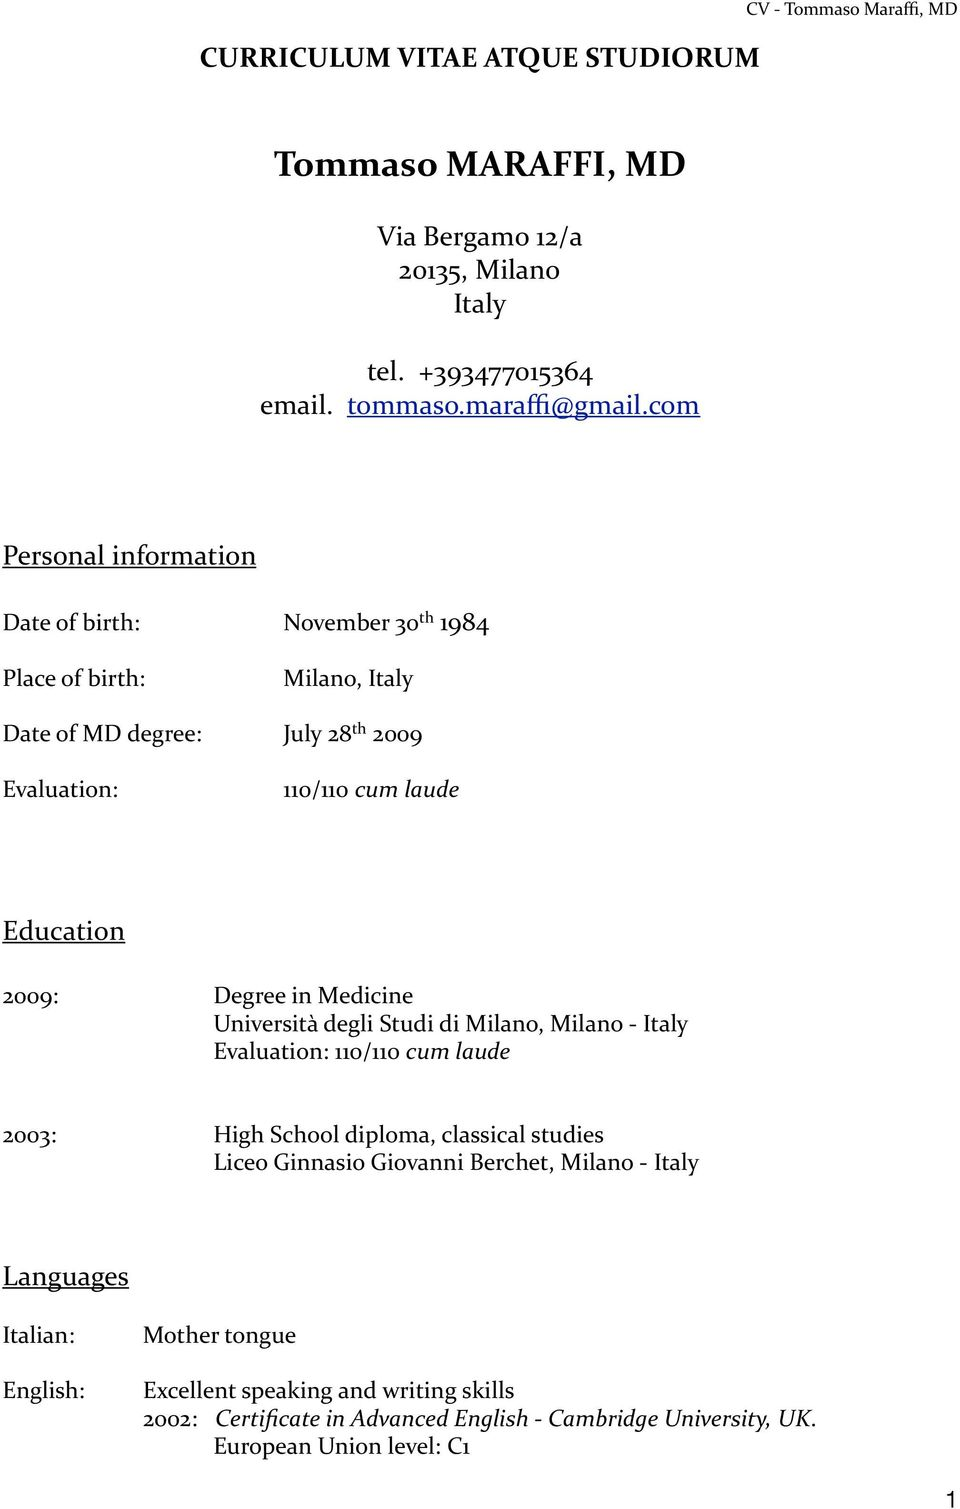 Degree in Medicine Università degli Studi di, - Italy Evaluation: 110/110 cum laude 2003: High School diploma, classical studies Liceo Ginnasio Giovanni Berchet, -